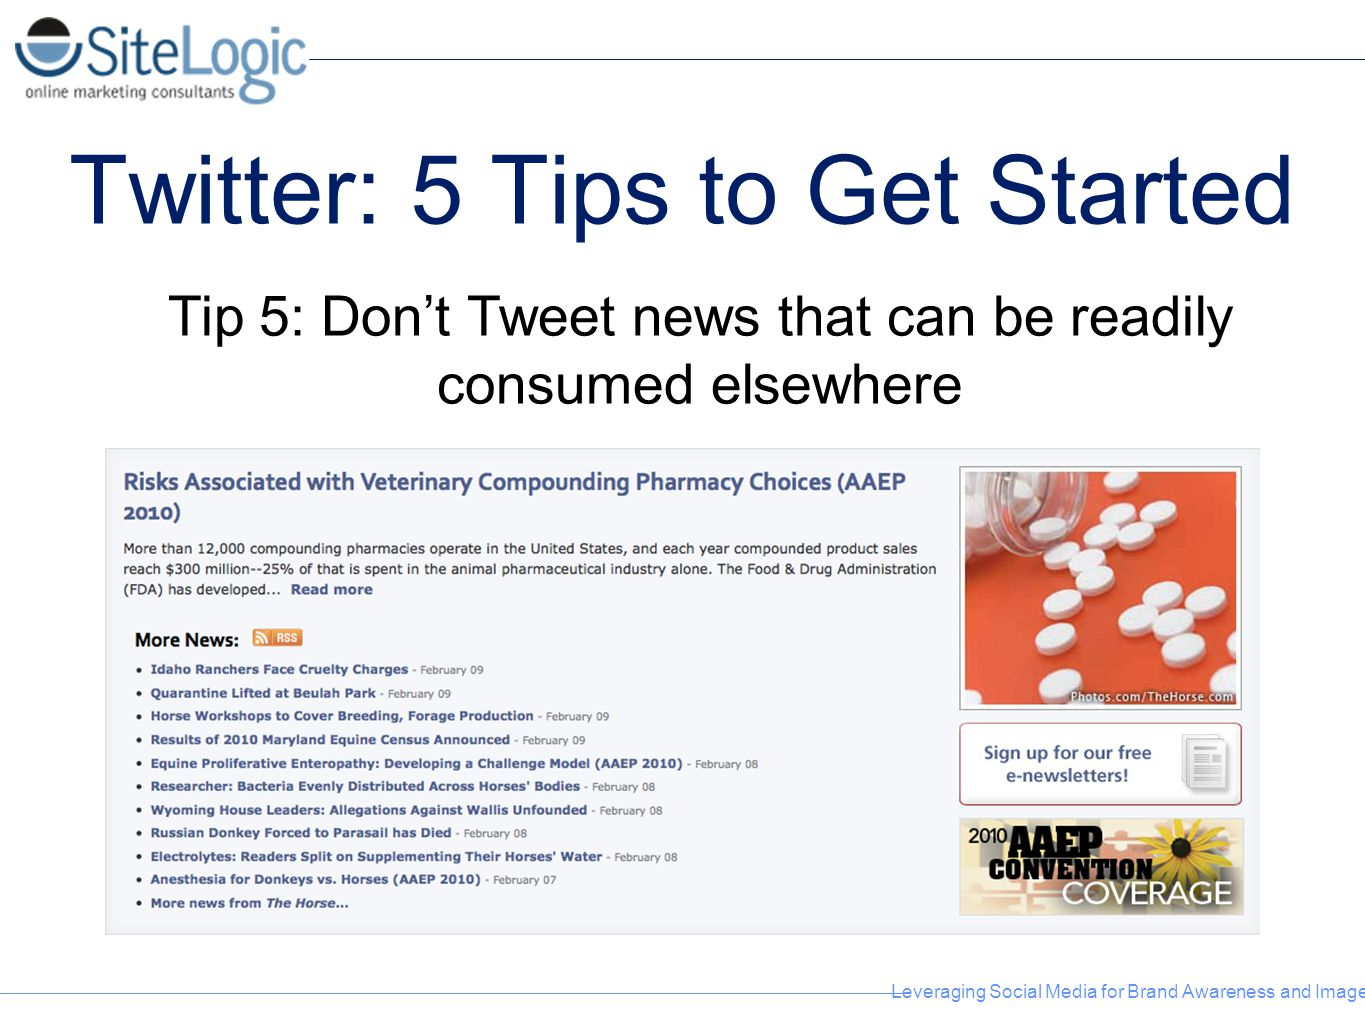 Leveraging Social Media for Brand Awareness and Image Twitter: 5 Tips to Get Started Tip 5: Don't Tweet news that can be readily consumed elsewhere